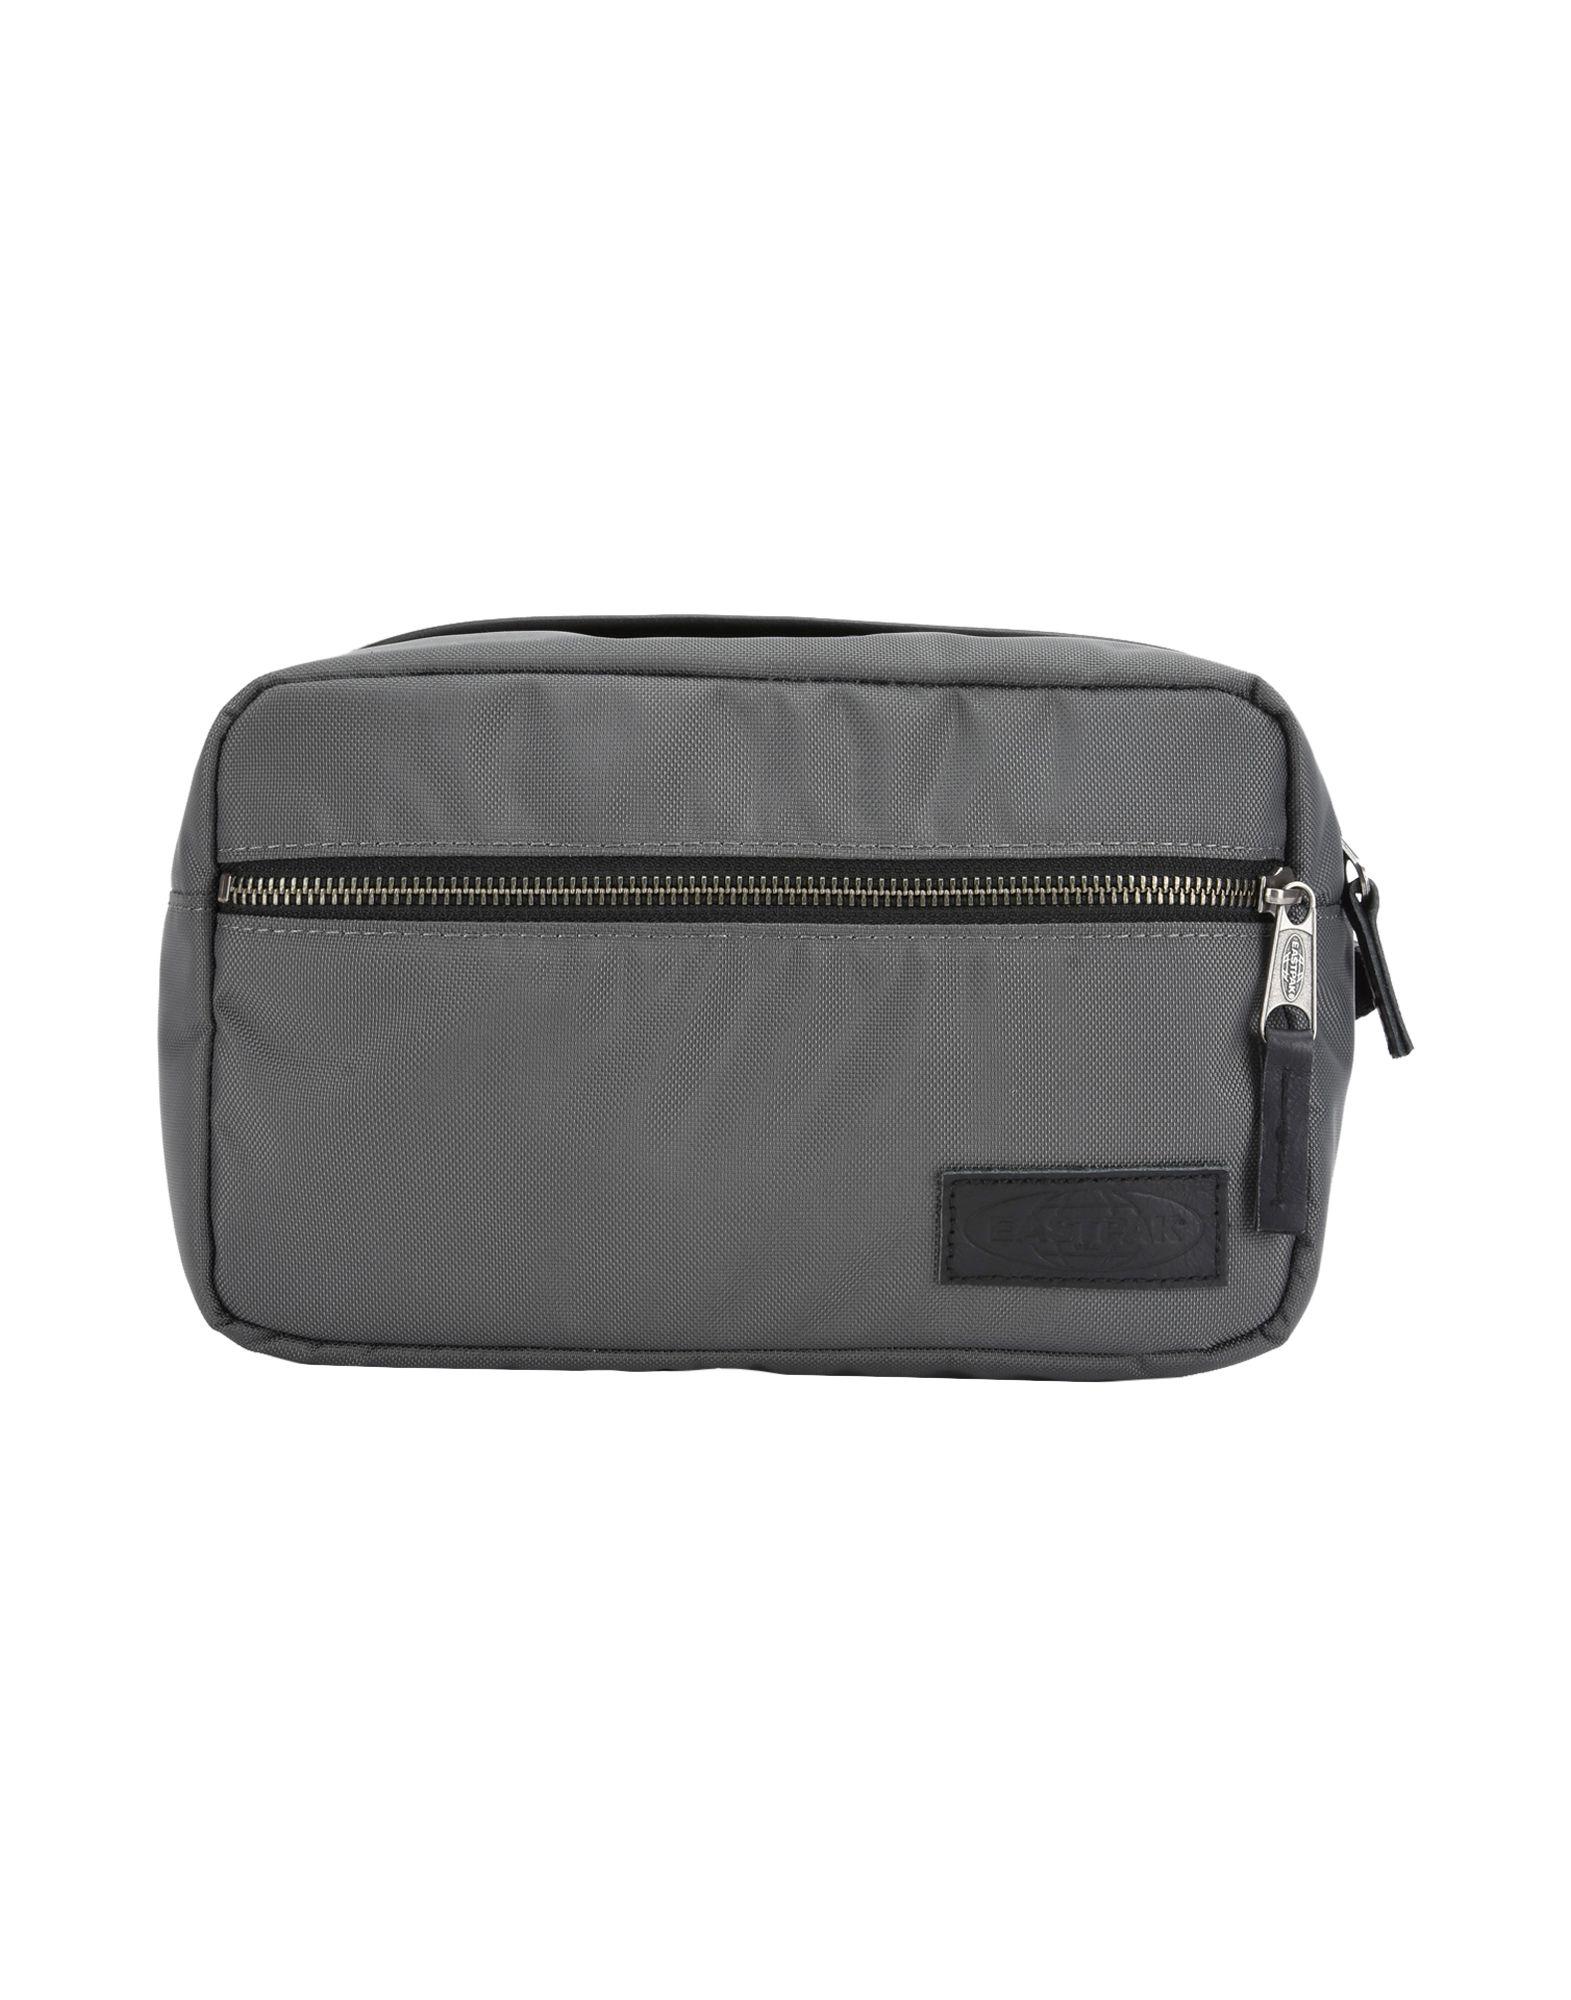 EASTPAK Beauty case